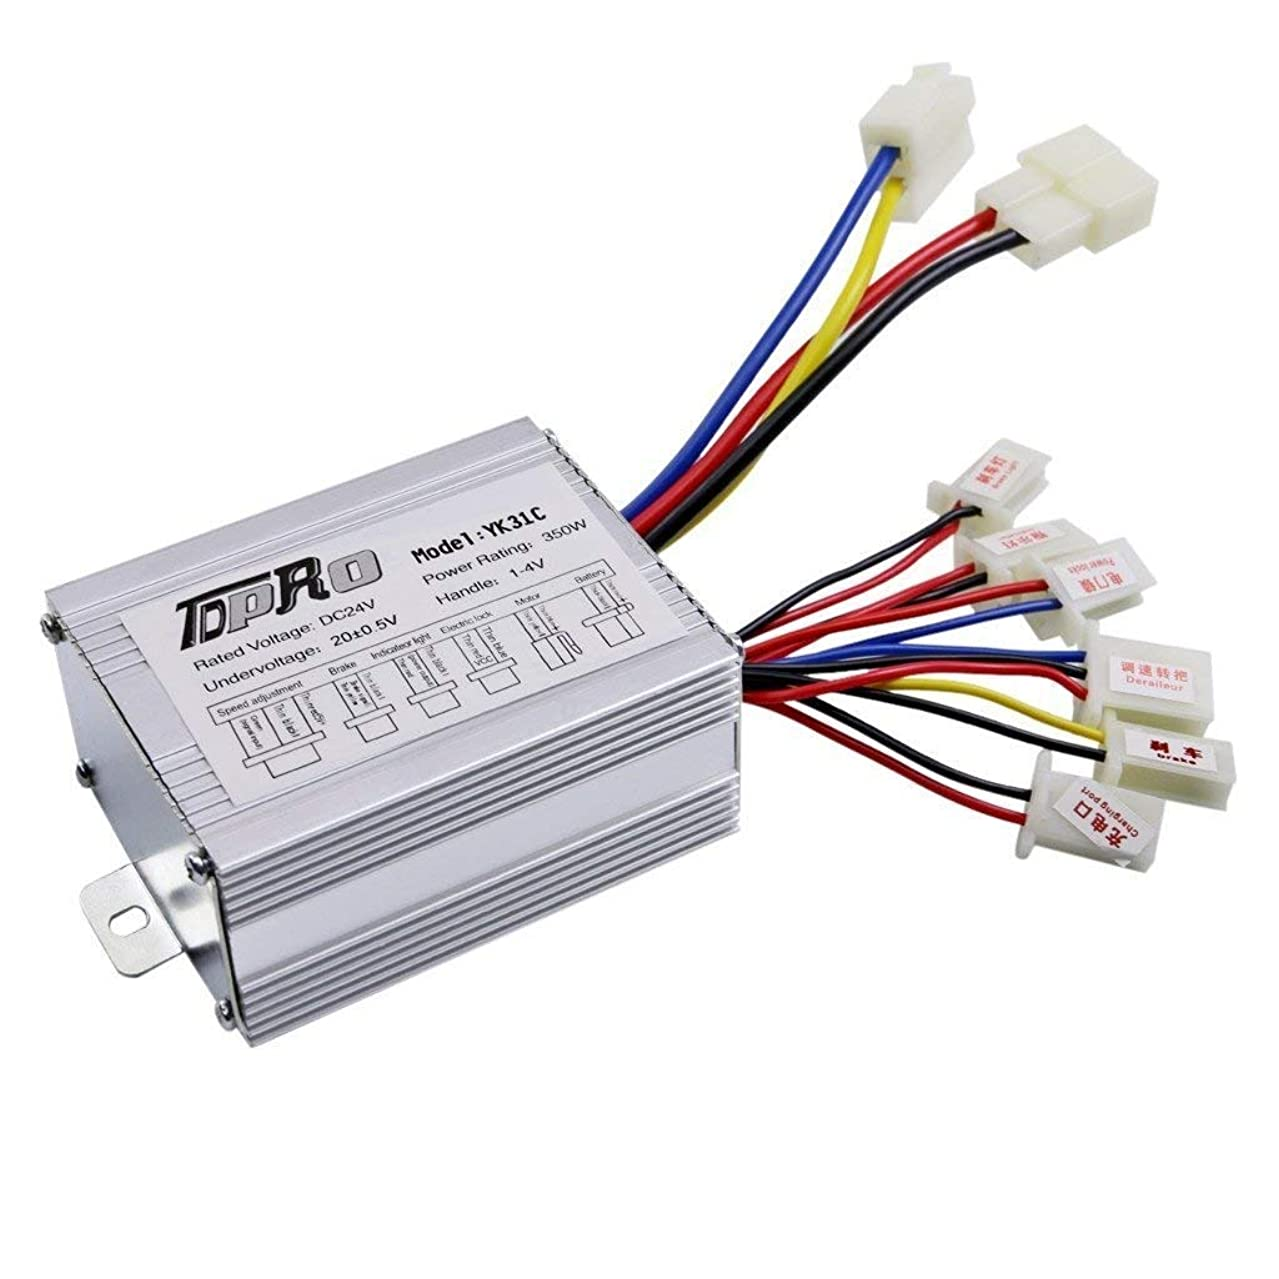 JCMOTO 24V 350W Brush Speed Motor Controller for Electric Scooter Bicycle e Bike Tricycle